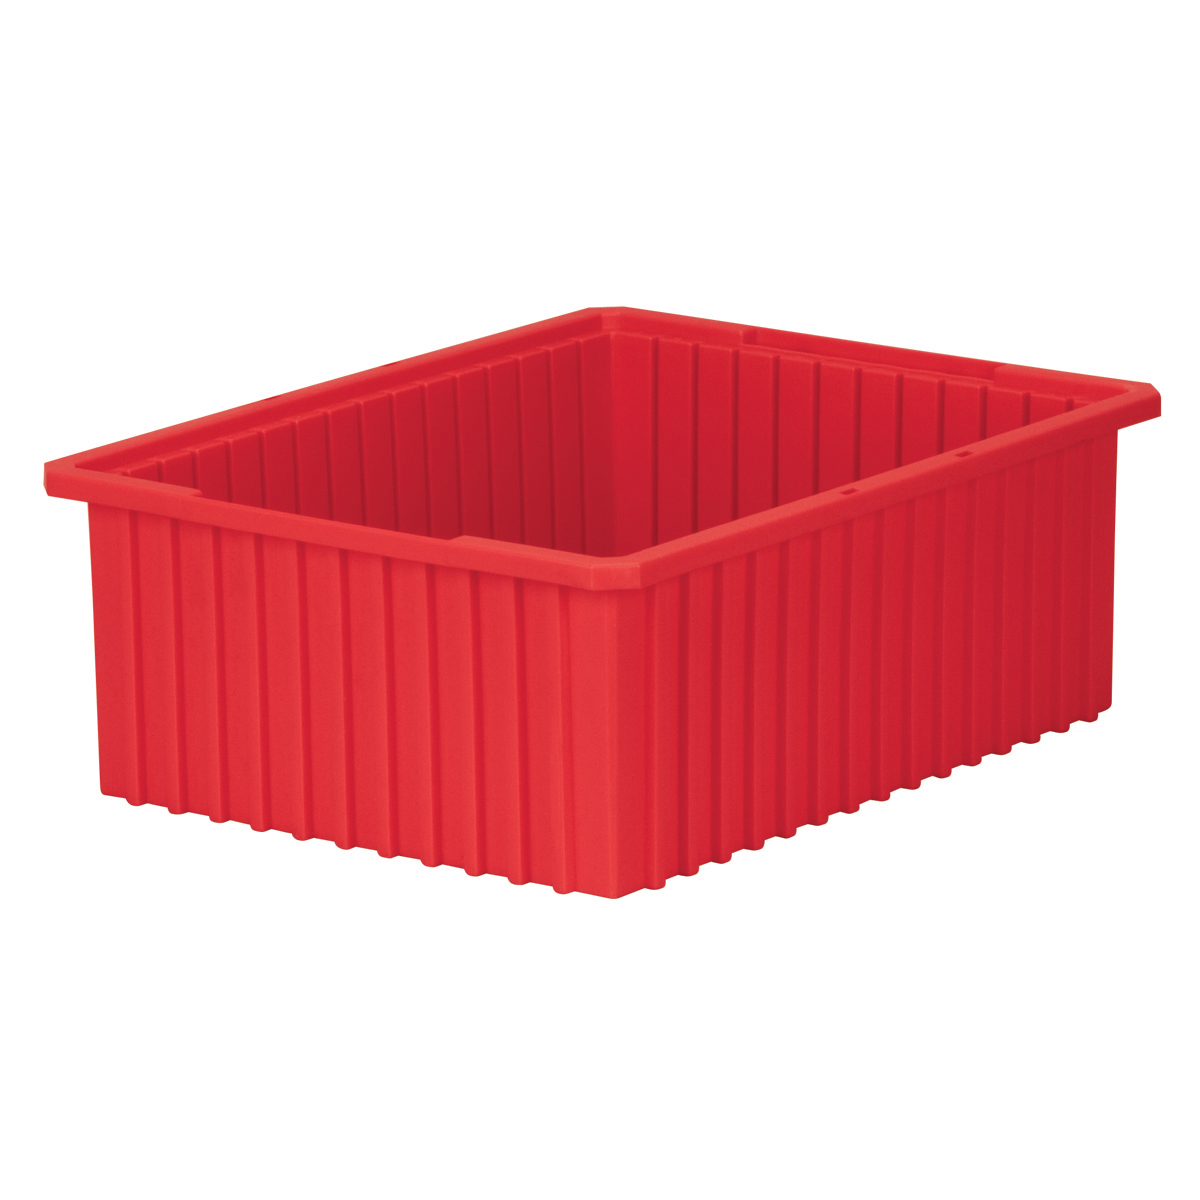 Akro-Grid Dividable Box 22-3/8 x 17-3/8 x 8, Red (33228RED).  This item sold in carton quantities of 3.